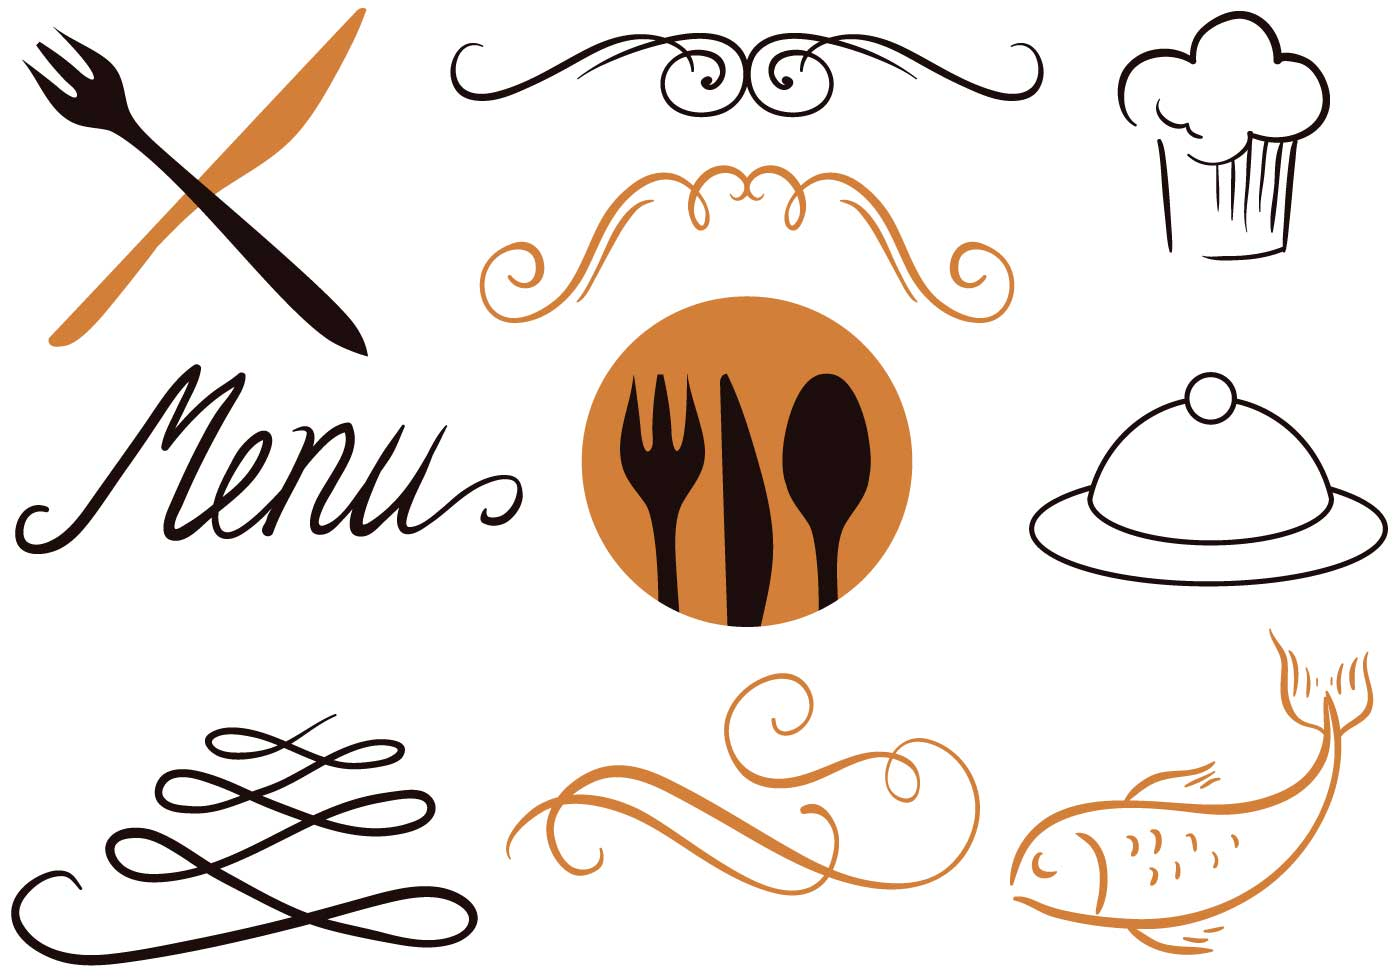 free hotel menu vectors download free vector art  stock hotel clip art black and white png hotel clip art black and white png